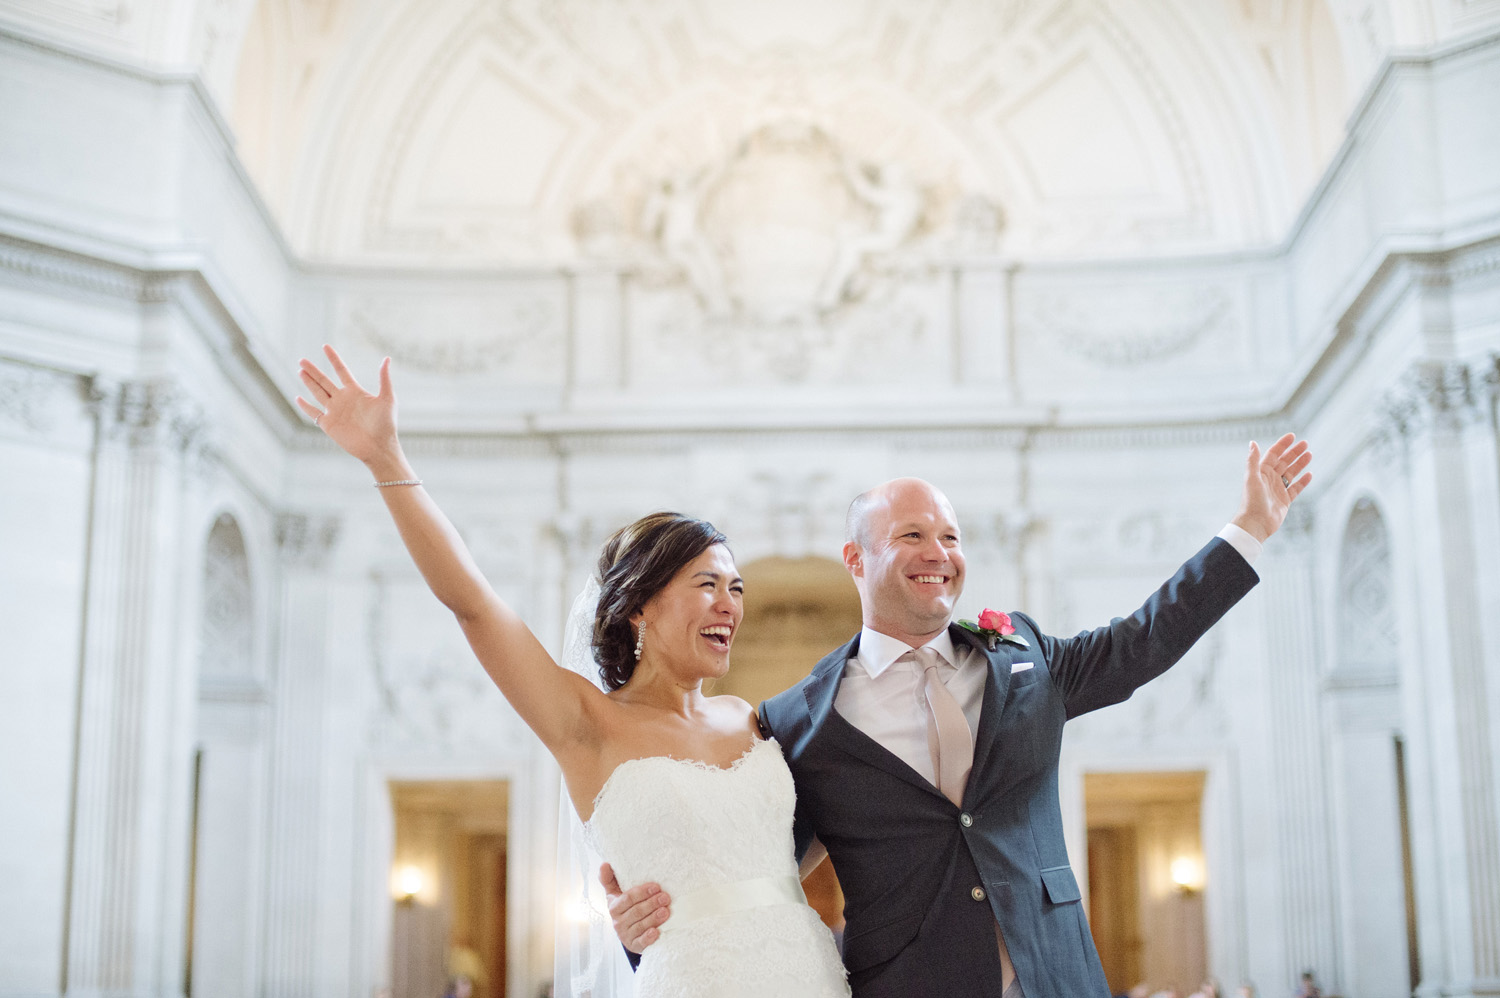 bride and groom hold each other in a celebratory embrace after they get married in San Francisco City Hall